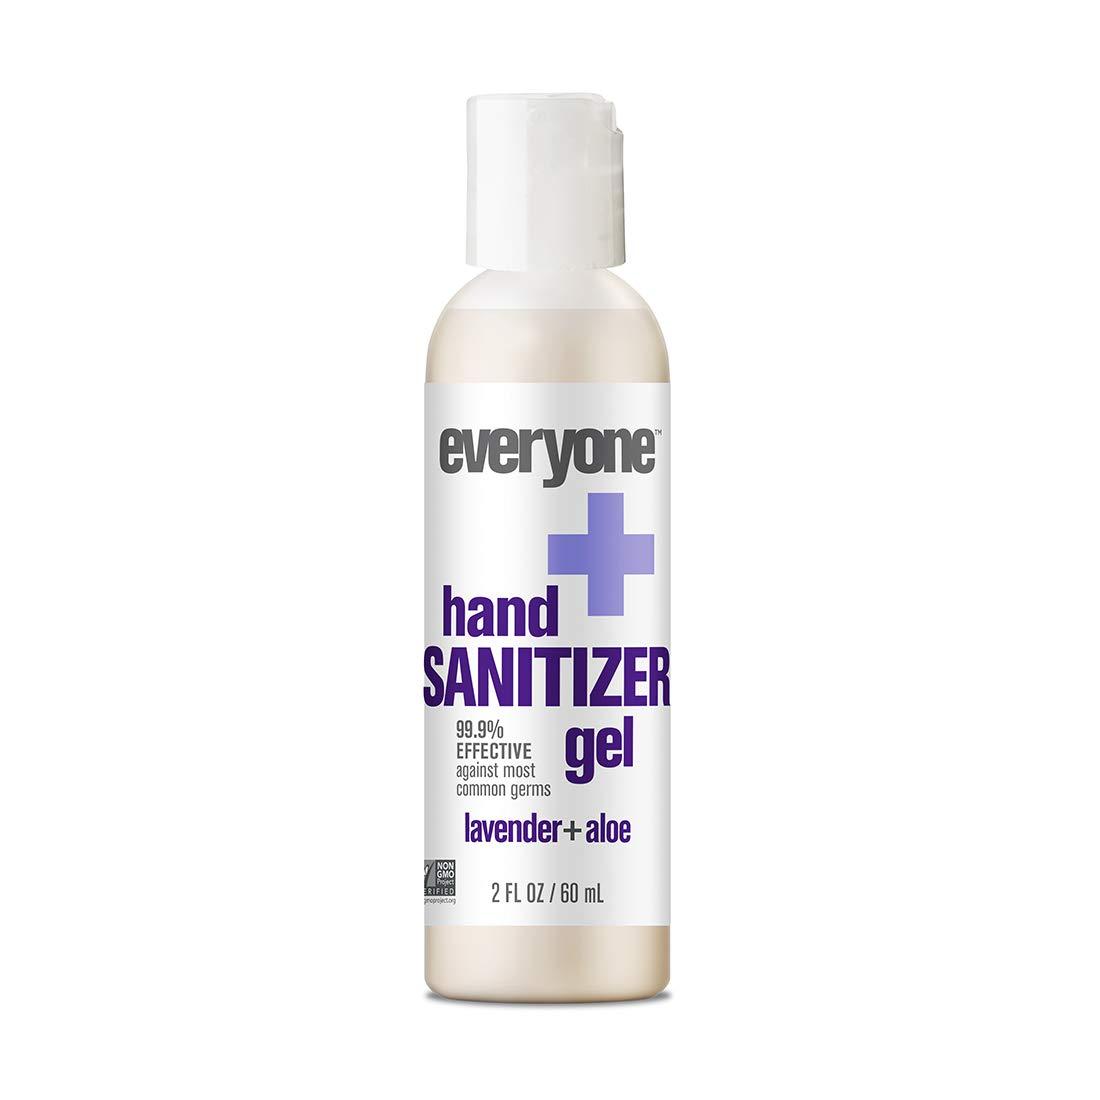 Top 12 Ethyl Alcohol Hand Sanitizer While Pregnant